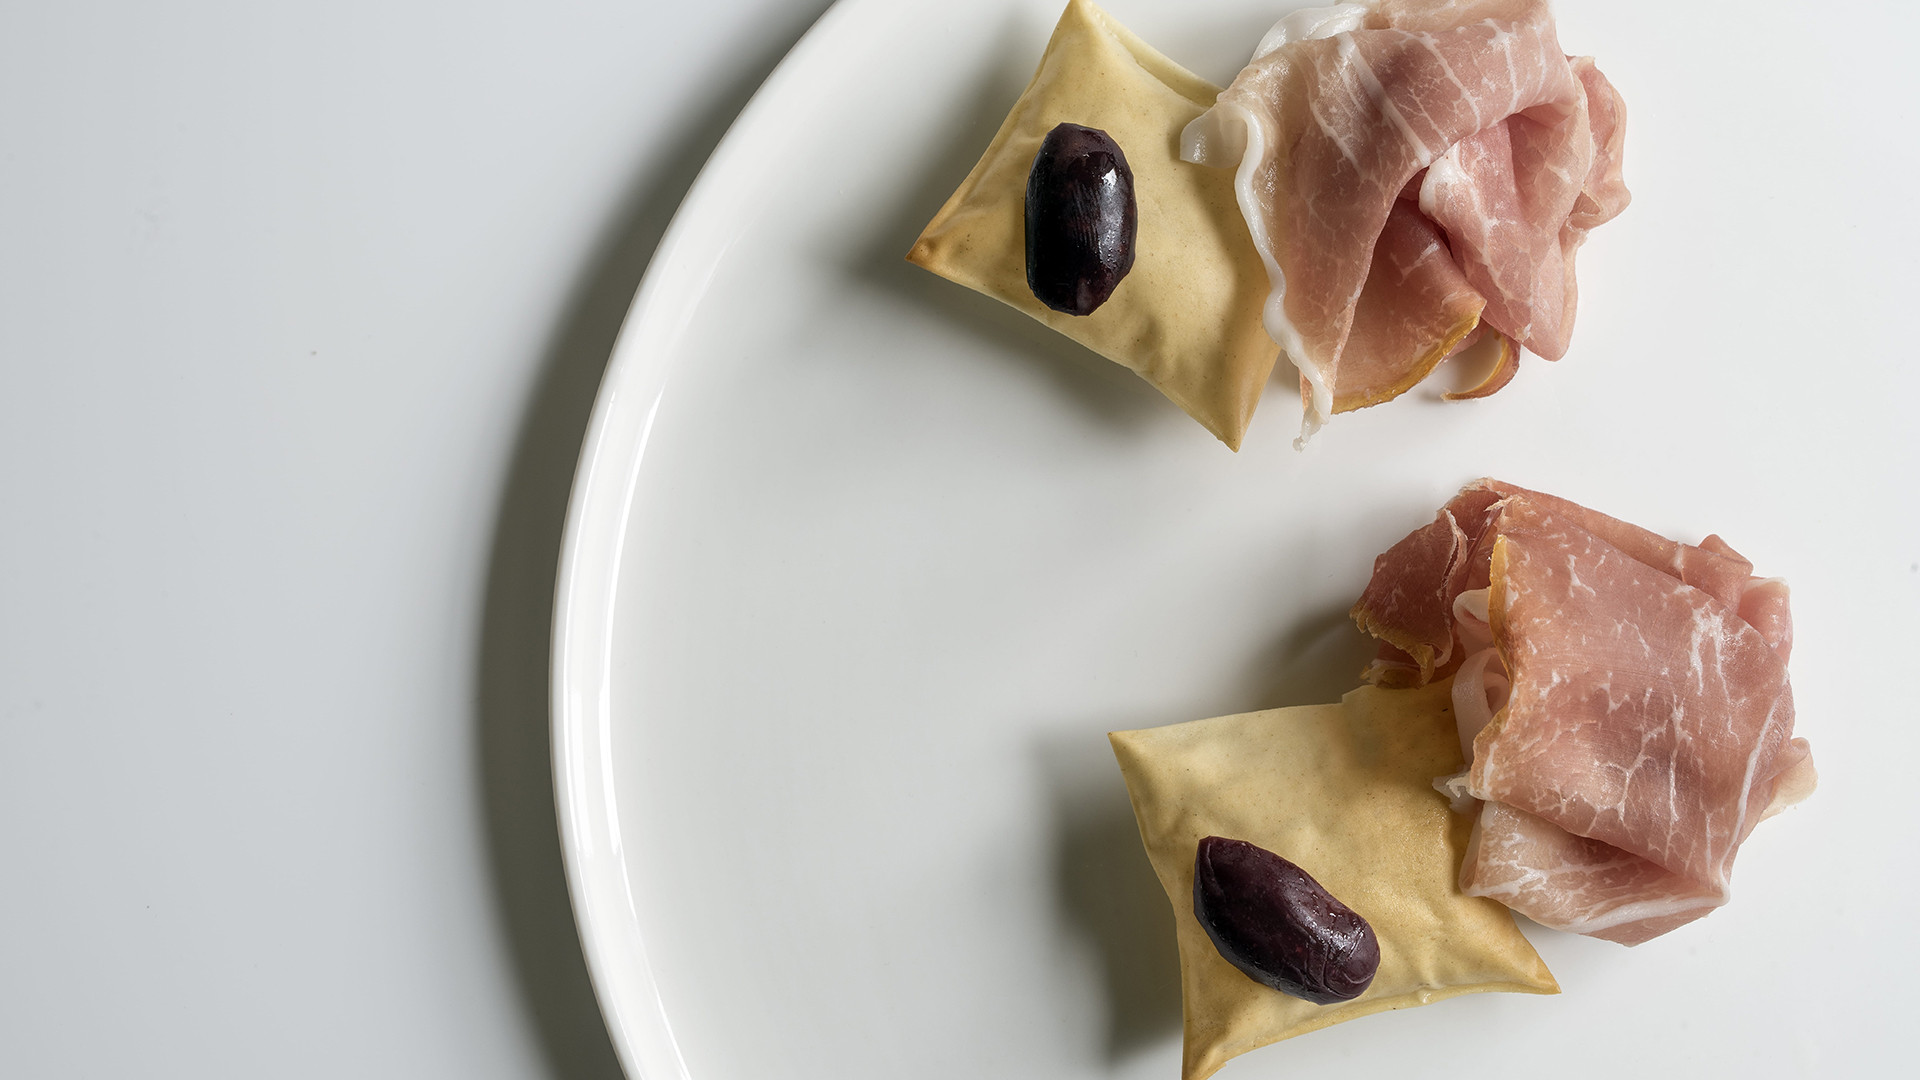 San Daniele Prosciutto, 'grissini' and Kalamata olive from Roux at the Landau